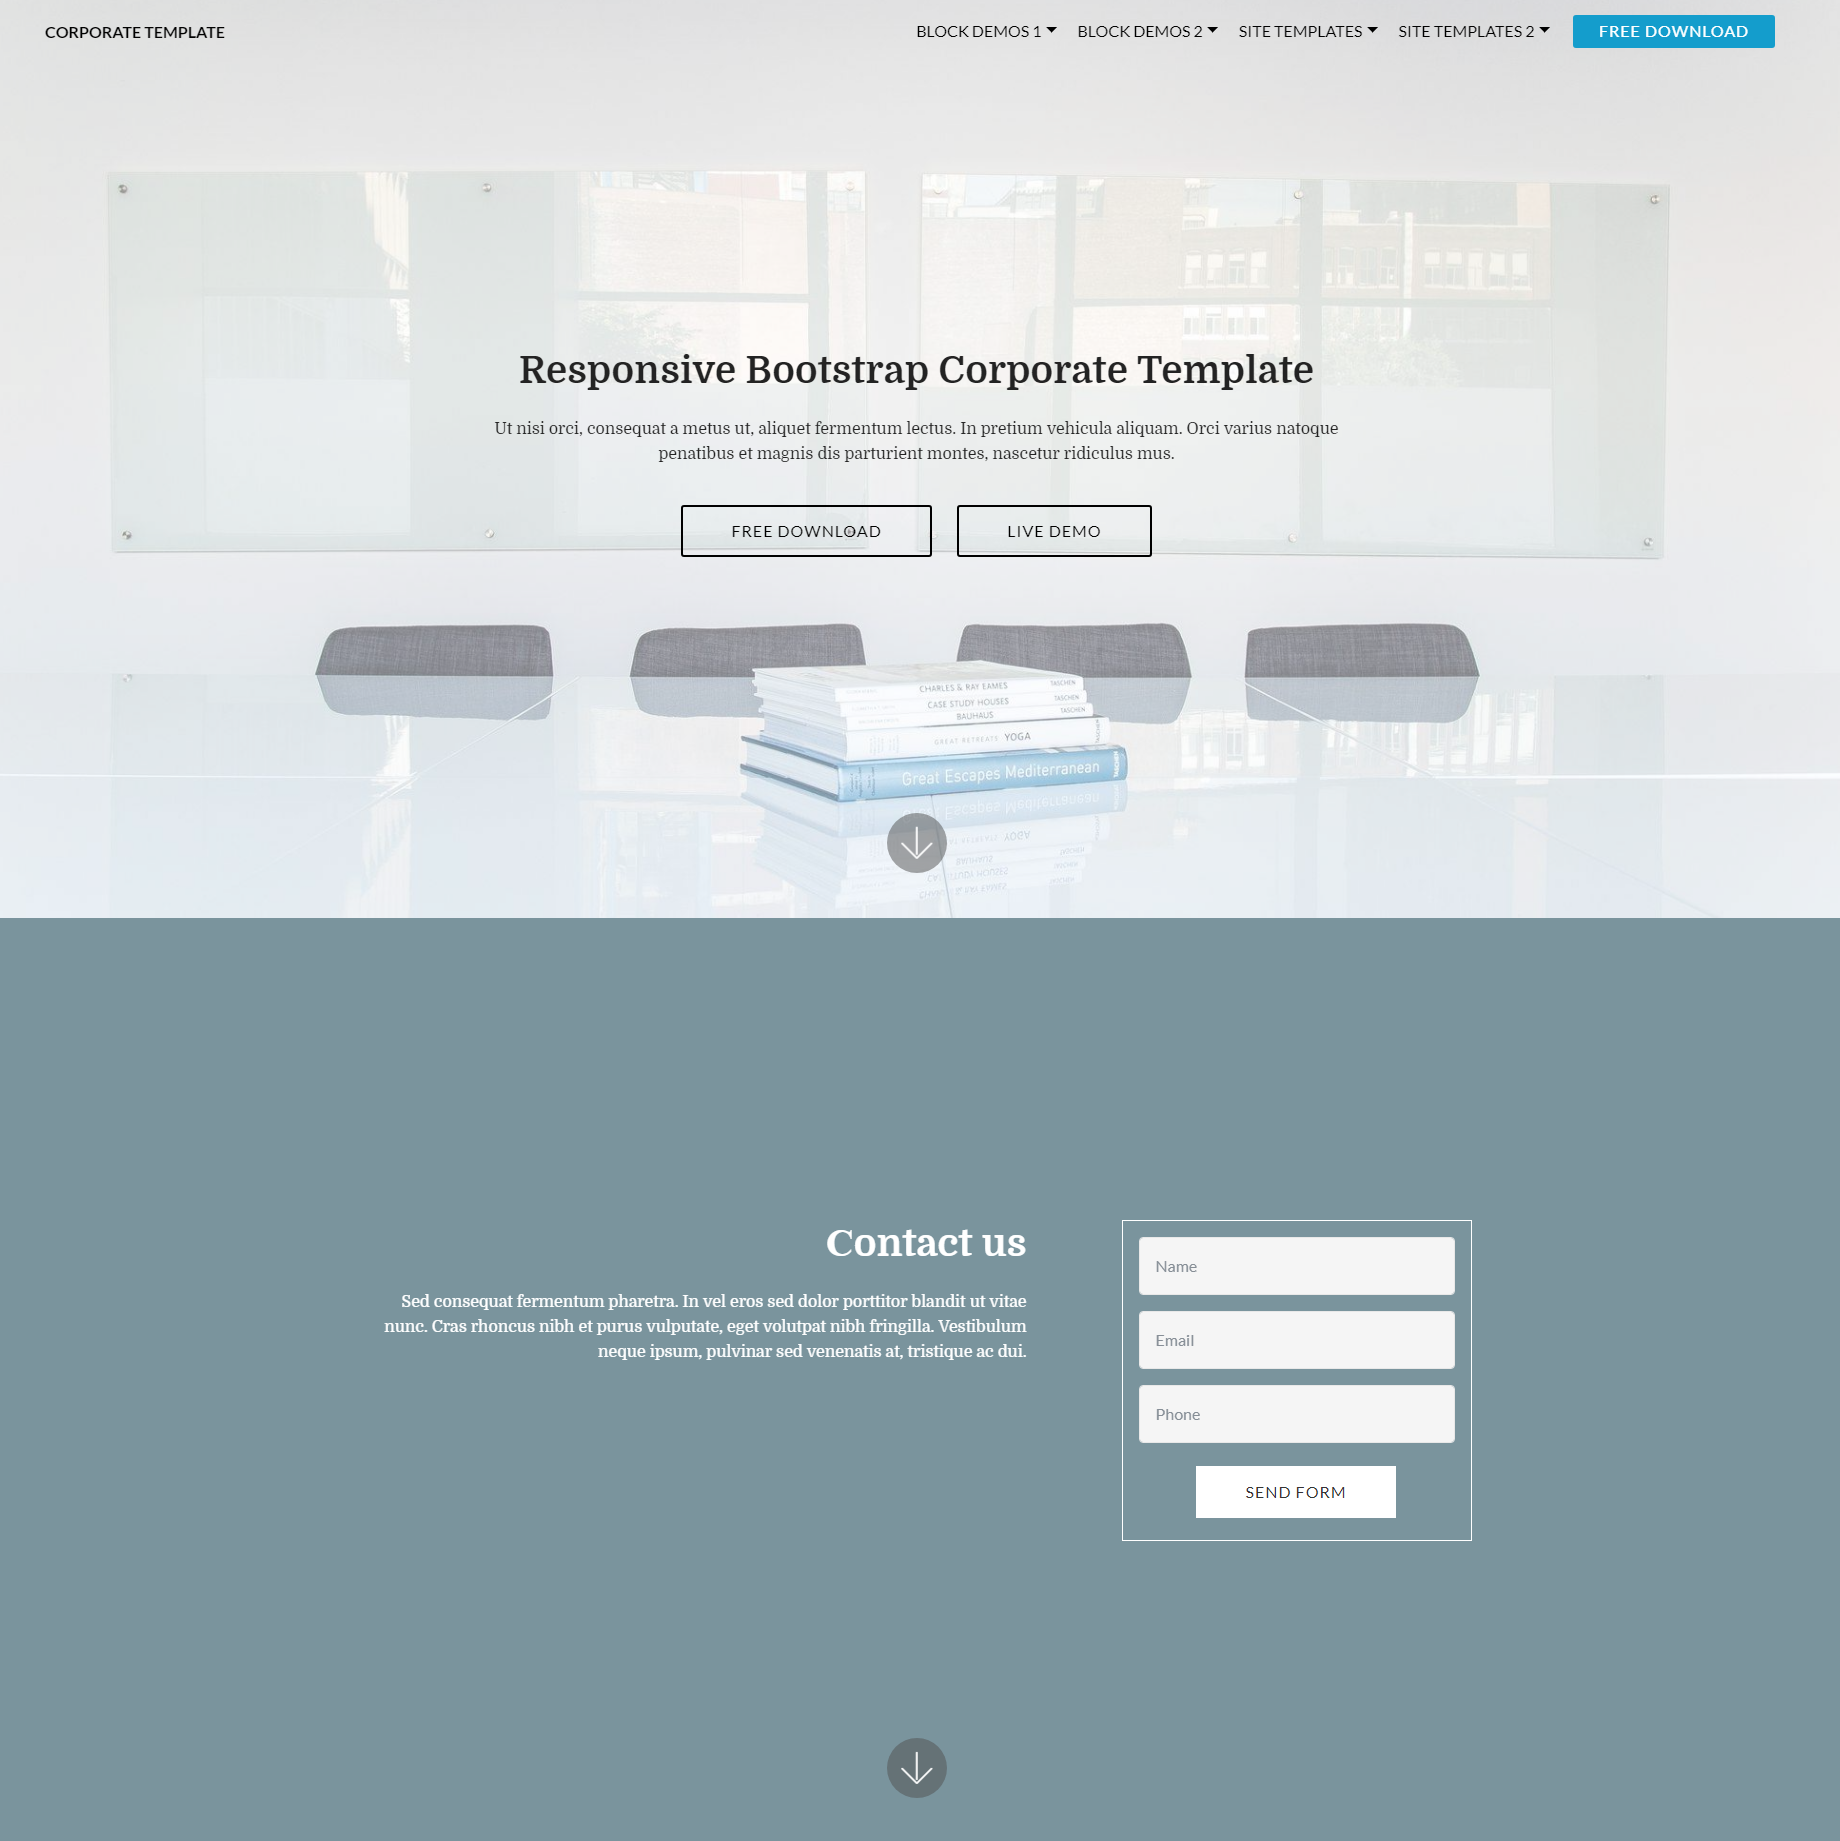 HTML5 Bootstrap Corporate Templates